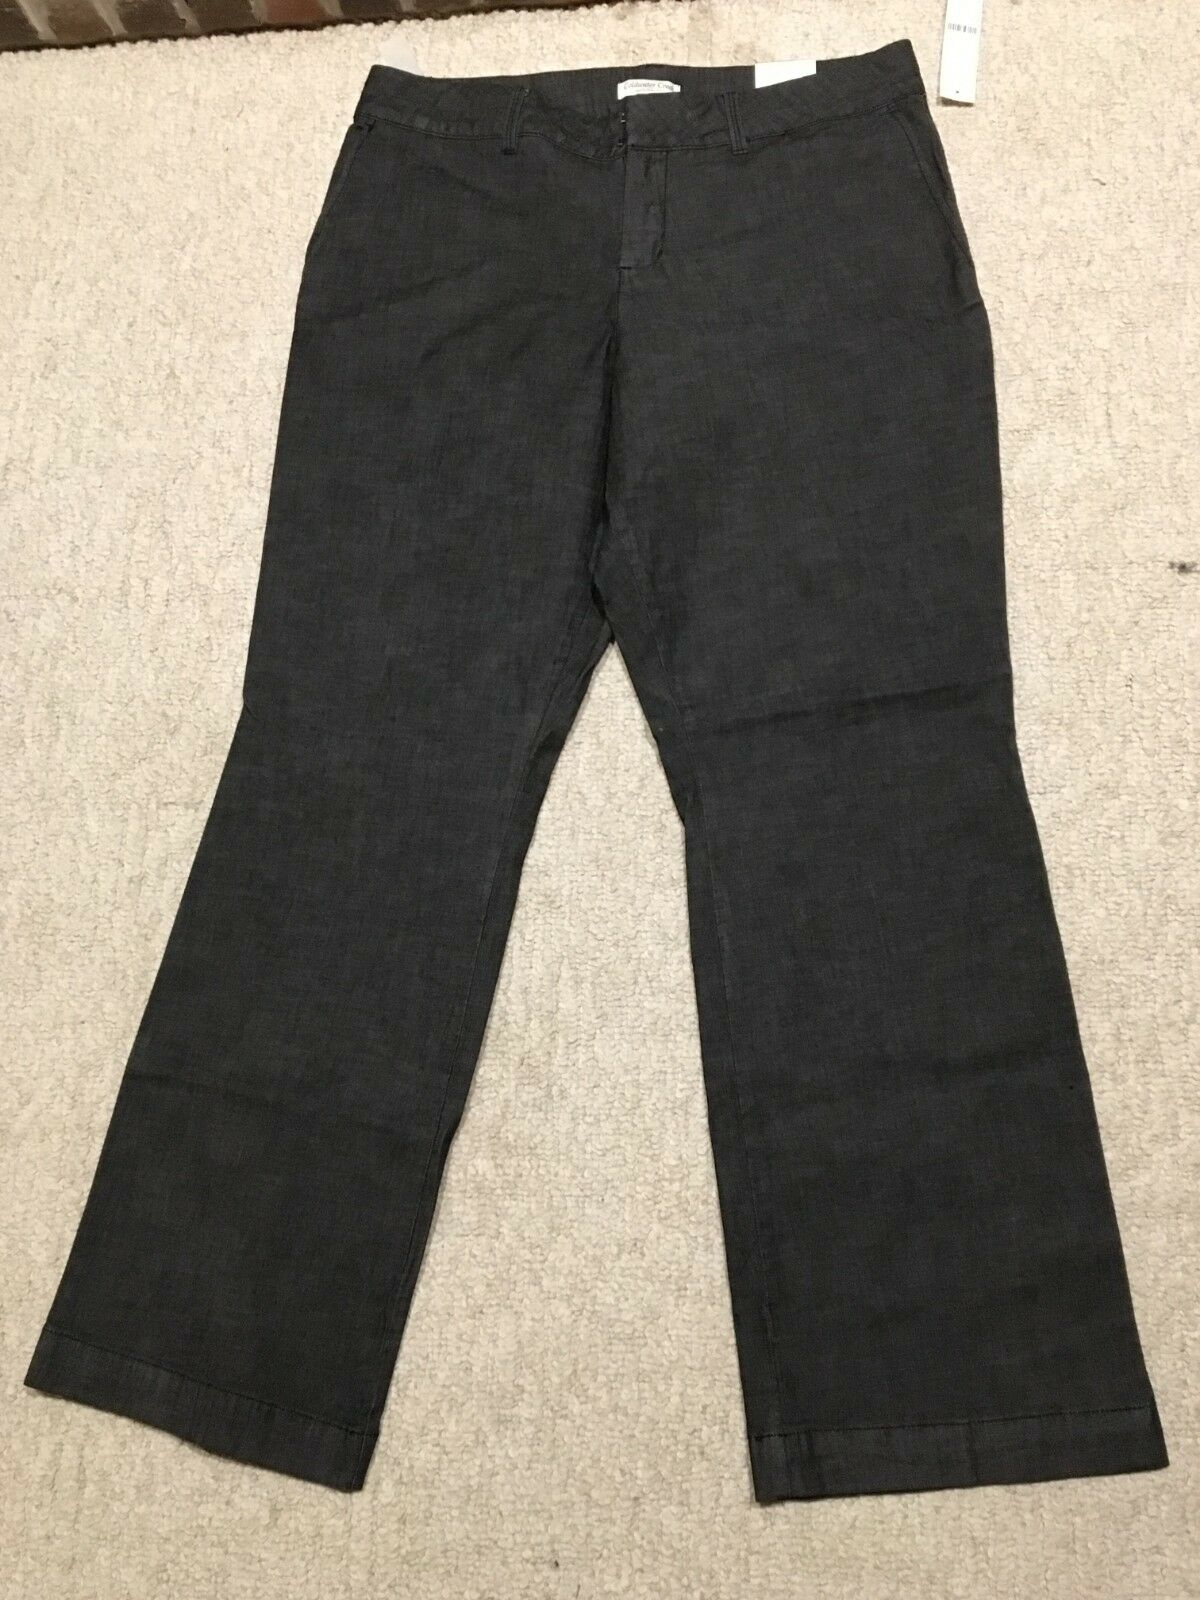 NEW COLDWATER CREEK Women's Misses 16 JEANS Natural Fit Boot Cut Trouser Denim